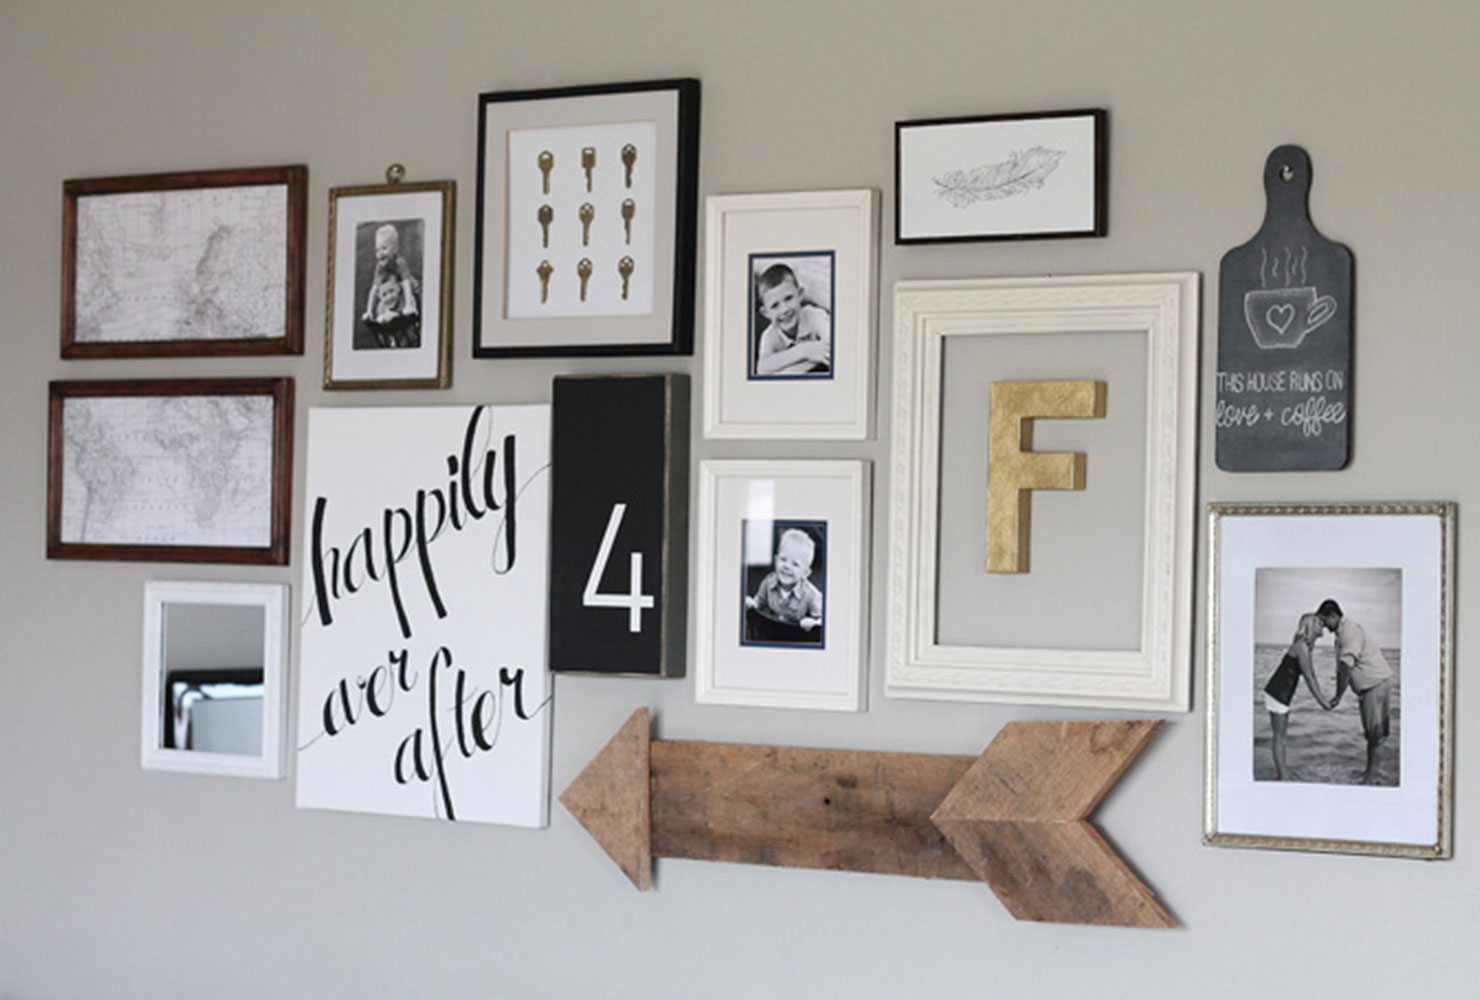 Photo Decoration In Room 55 Diy Room Decor Ideas To Decorate Your Home Shutterfly